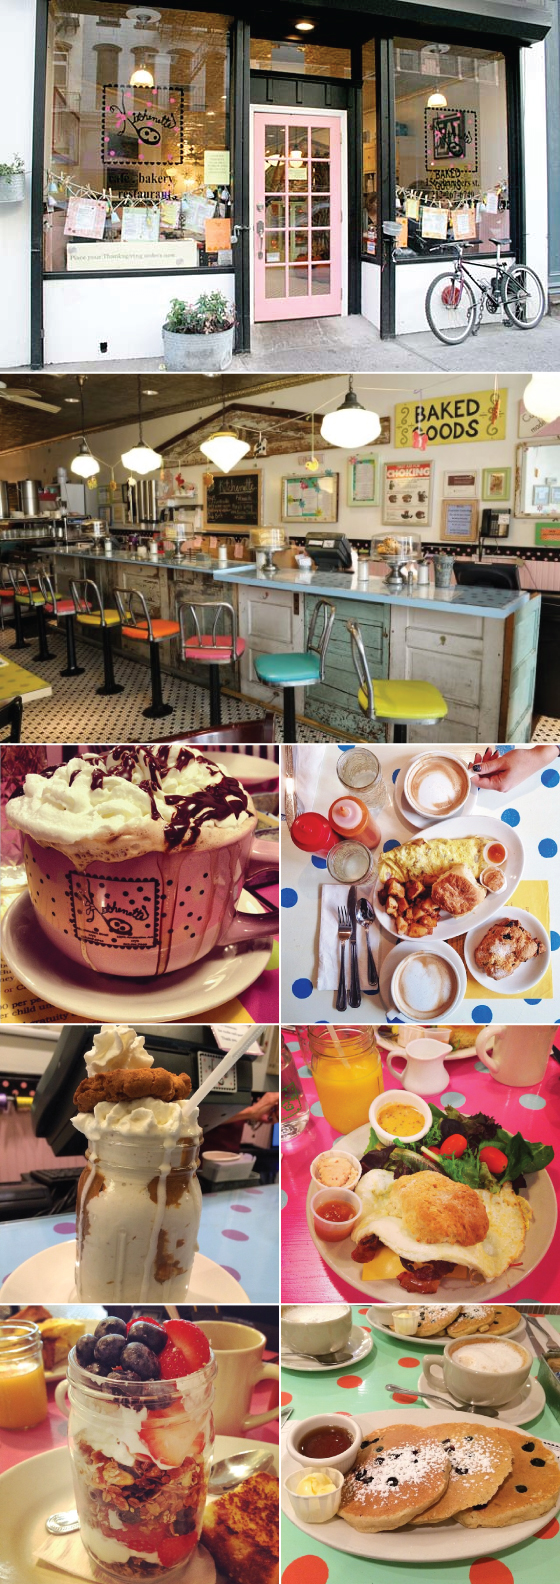 kitchenette-restaurante-ny-new-york-dica-tips-diner-fofo-travel-vintage-retro-brunch